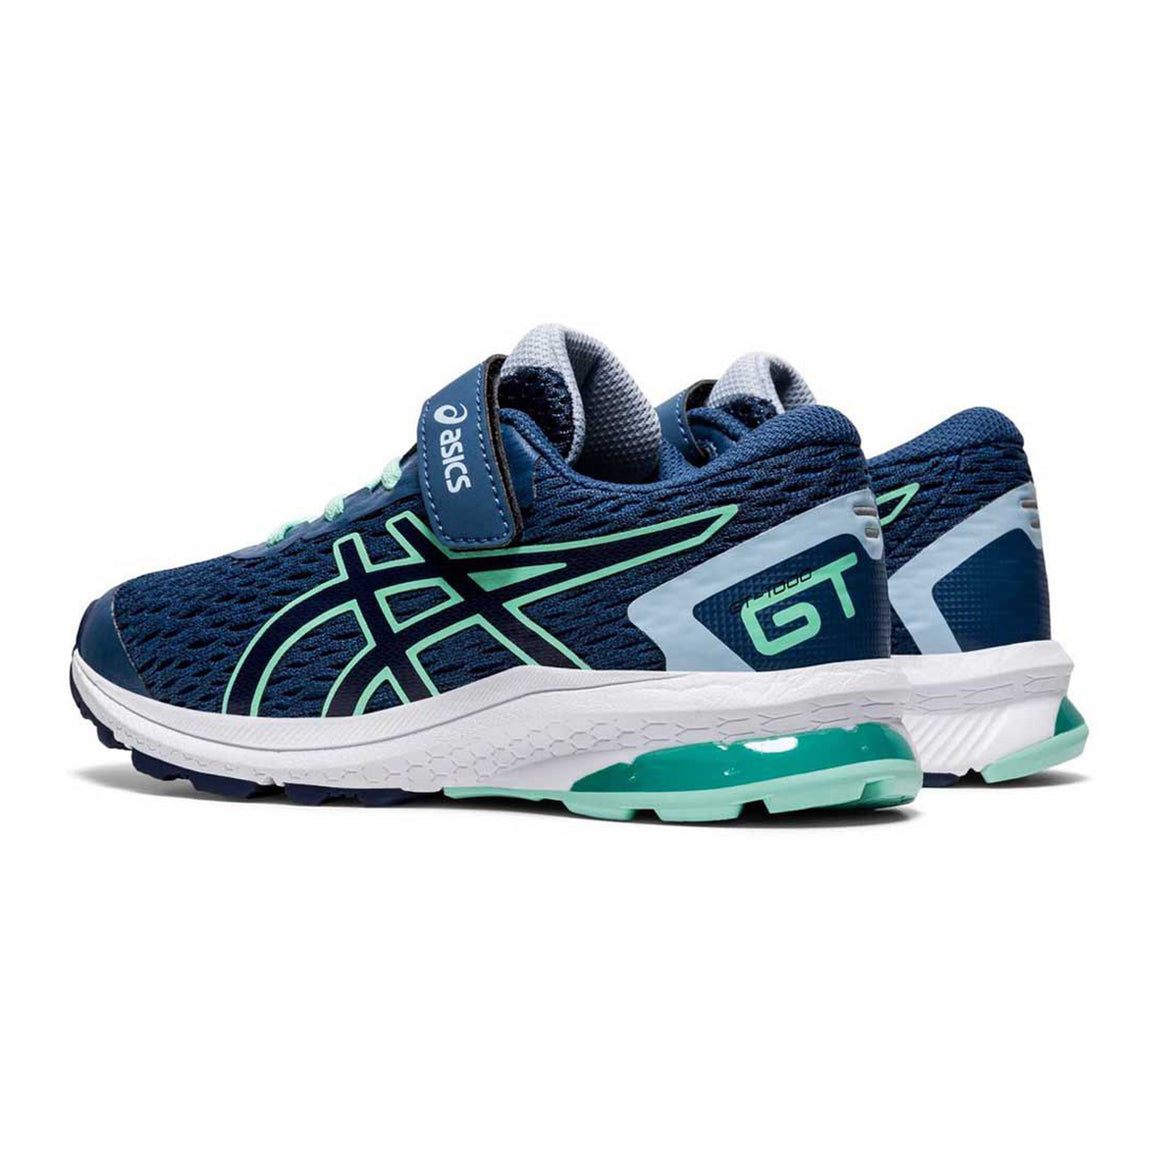 GT 1000 9 PS Running Shoes for Kids in Blue & Navy